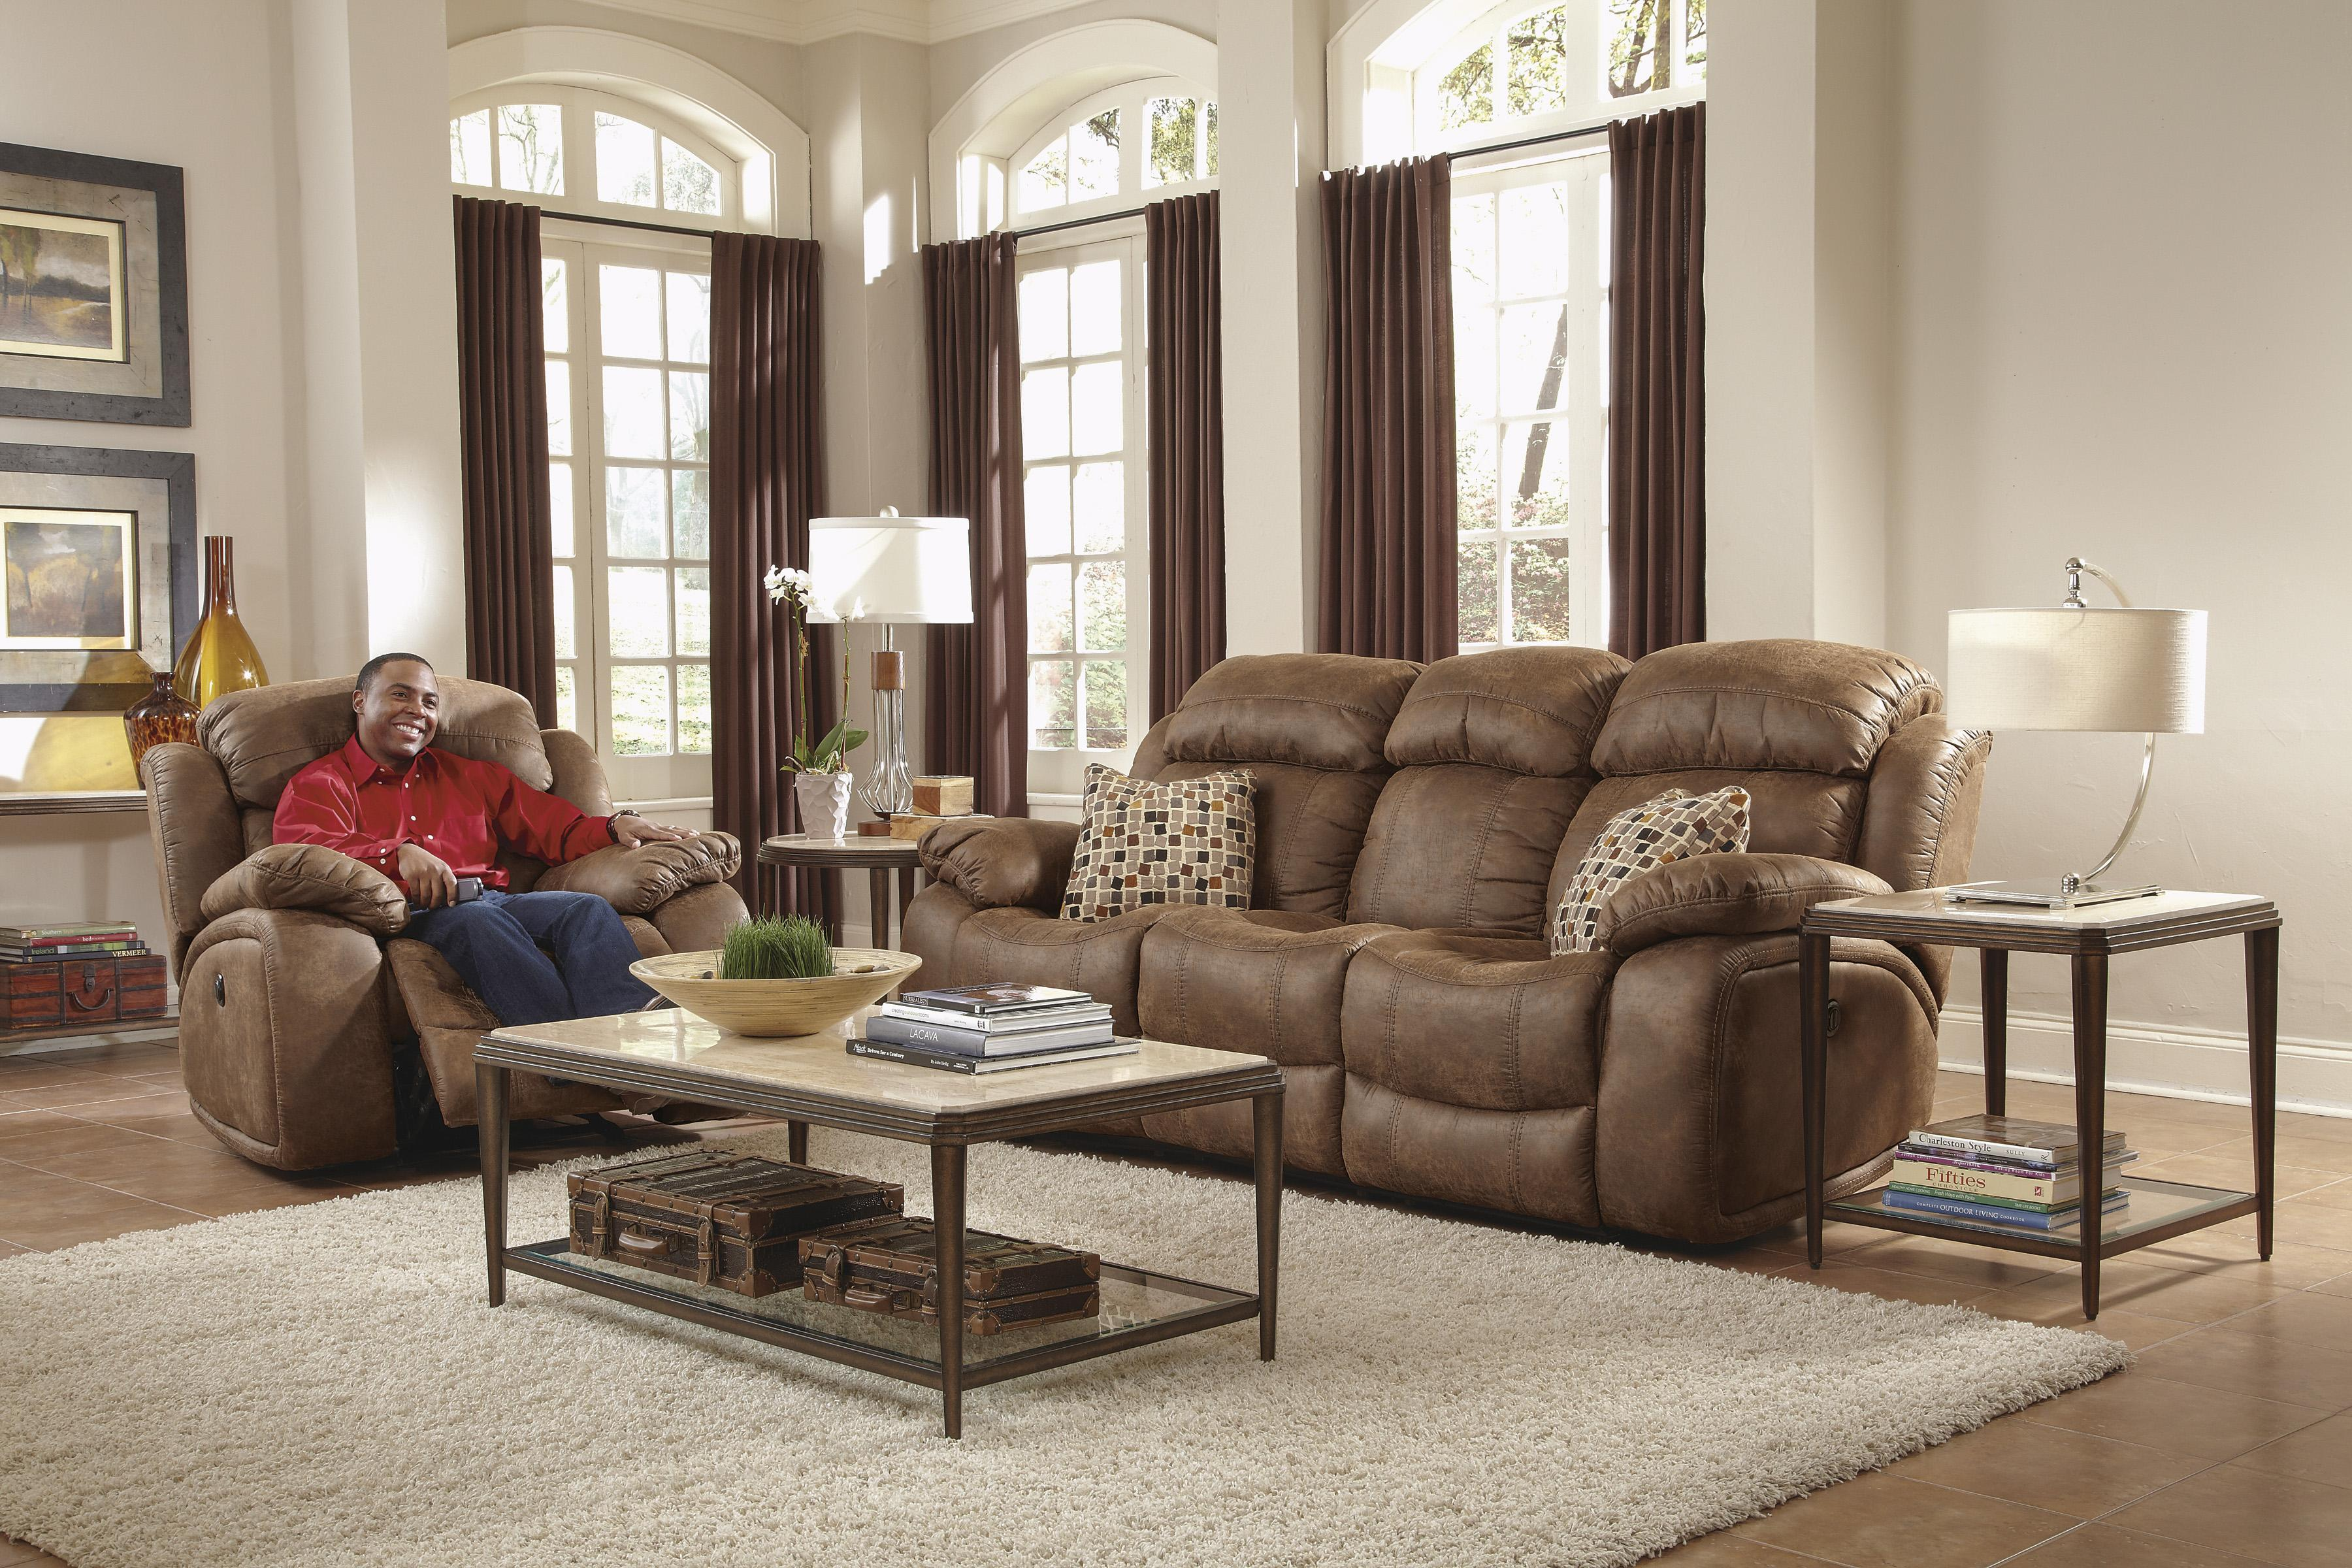 flex steel family sofa furniture product cupboard flexsteel lakewood harris